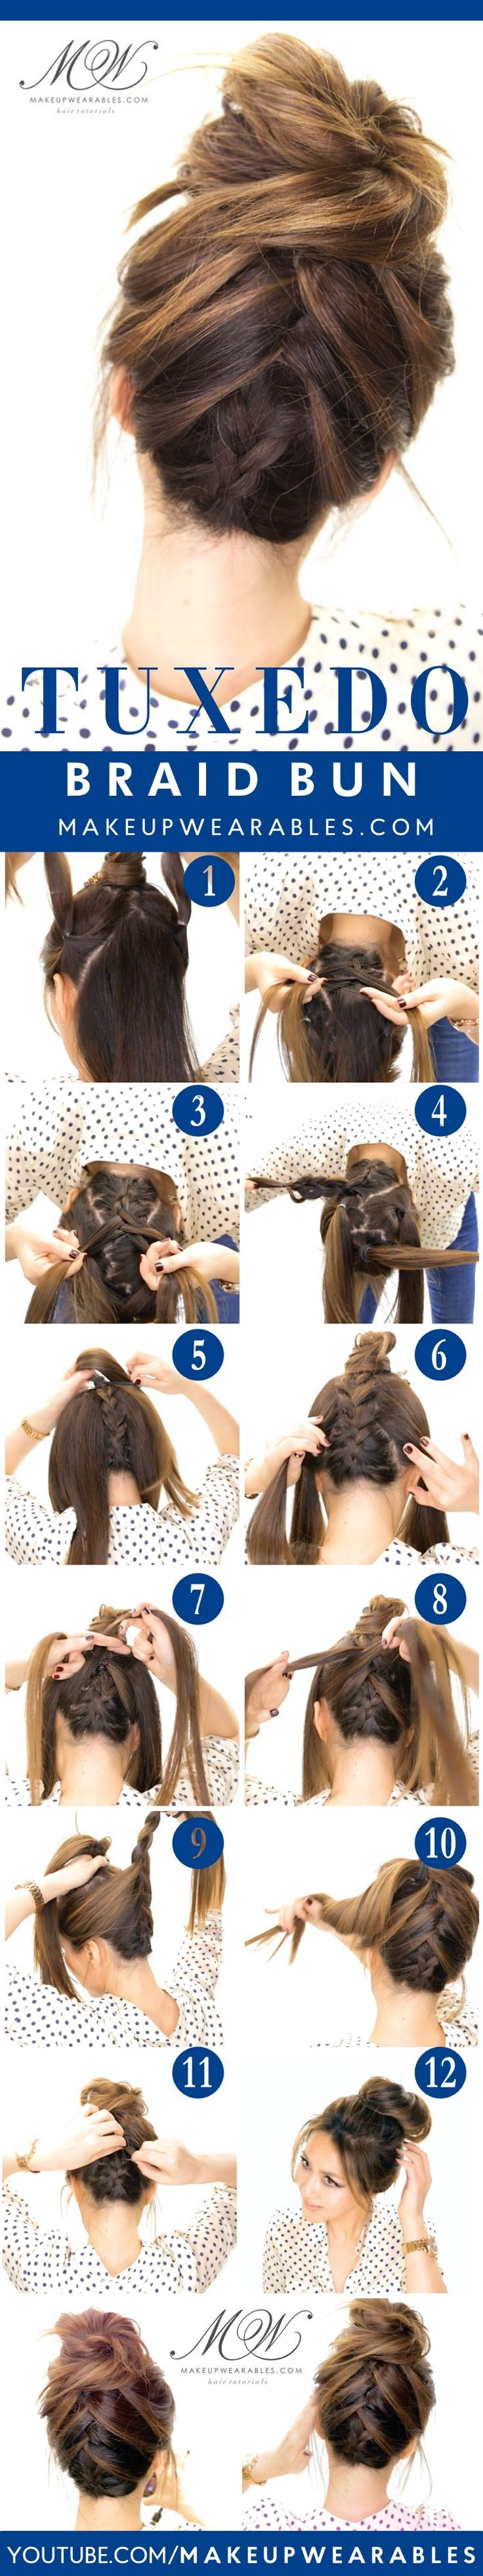 fall u winter outfit ideaus to copy right now braided bun